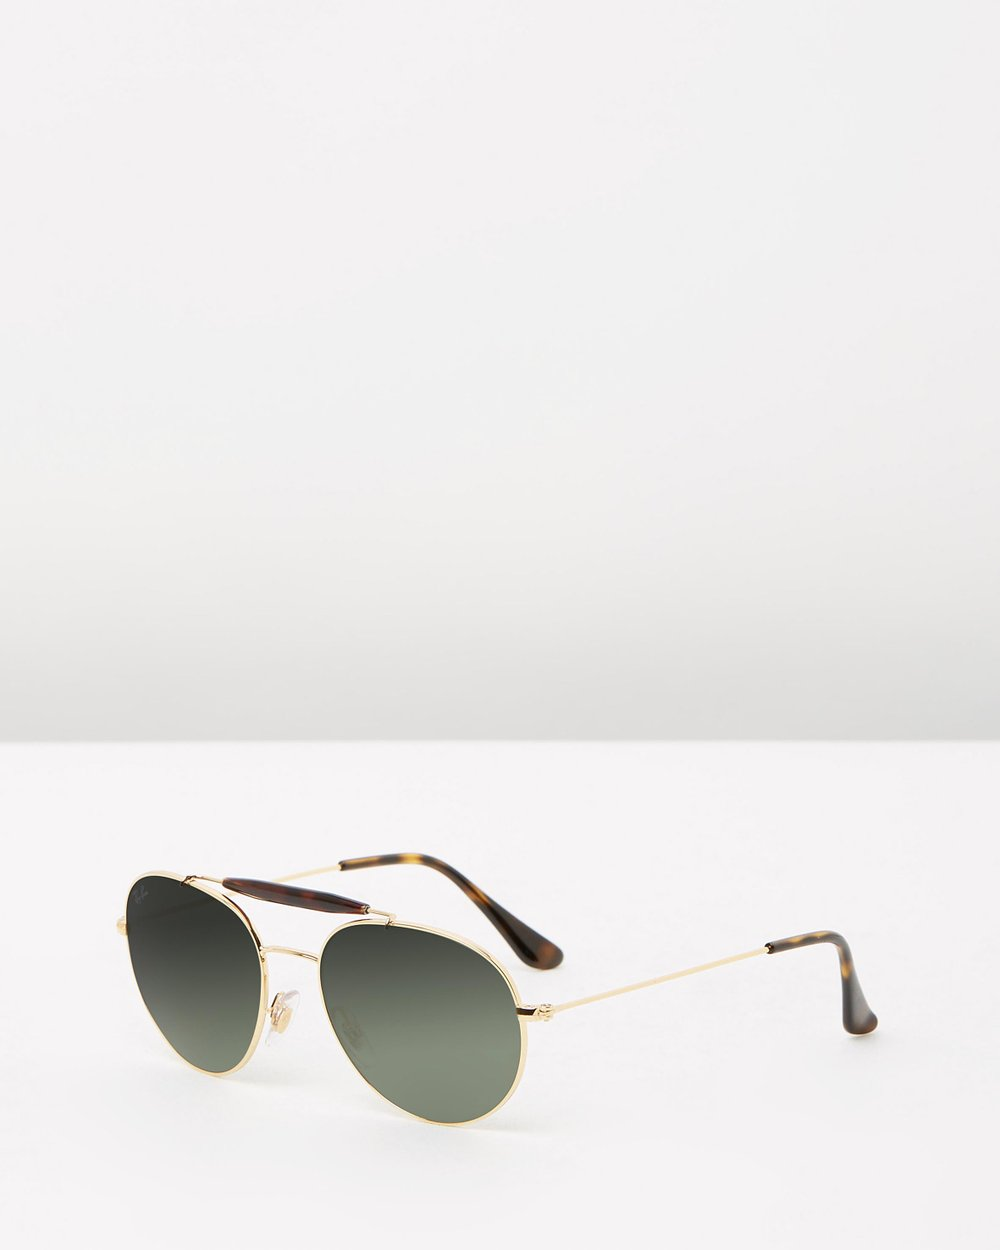 dea566caae58 Rb3540 By Rayban Online The Iconic Australia